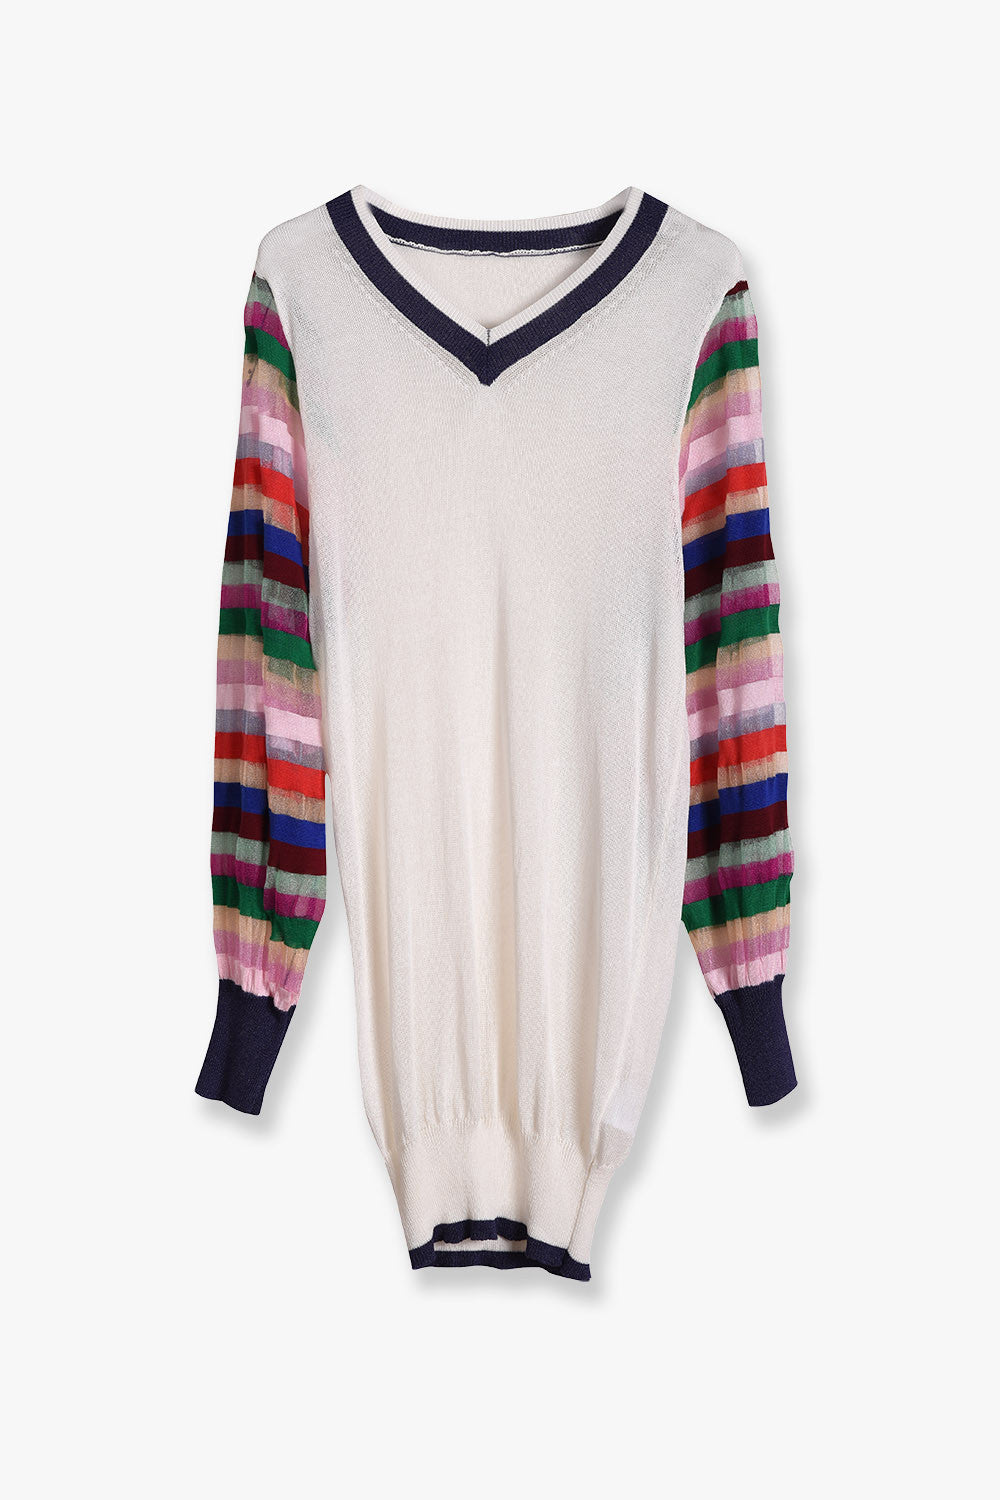 Striped-Sleeves Sheer Knit Sweater